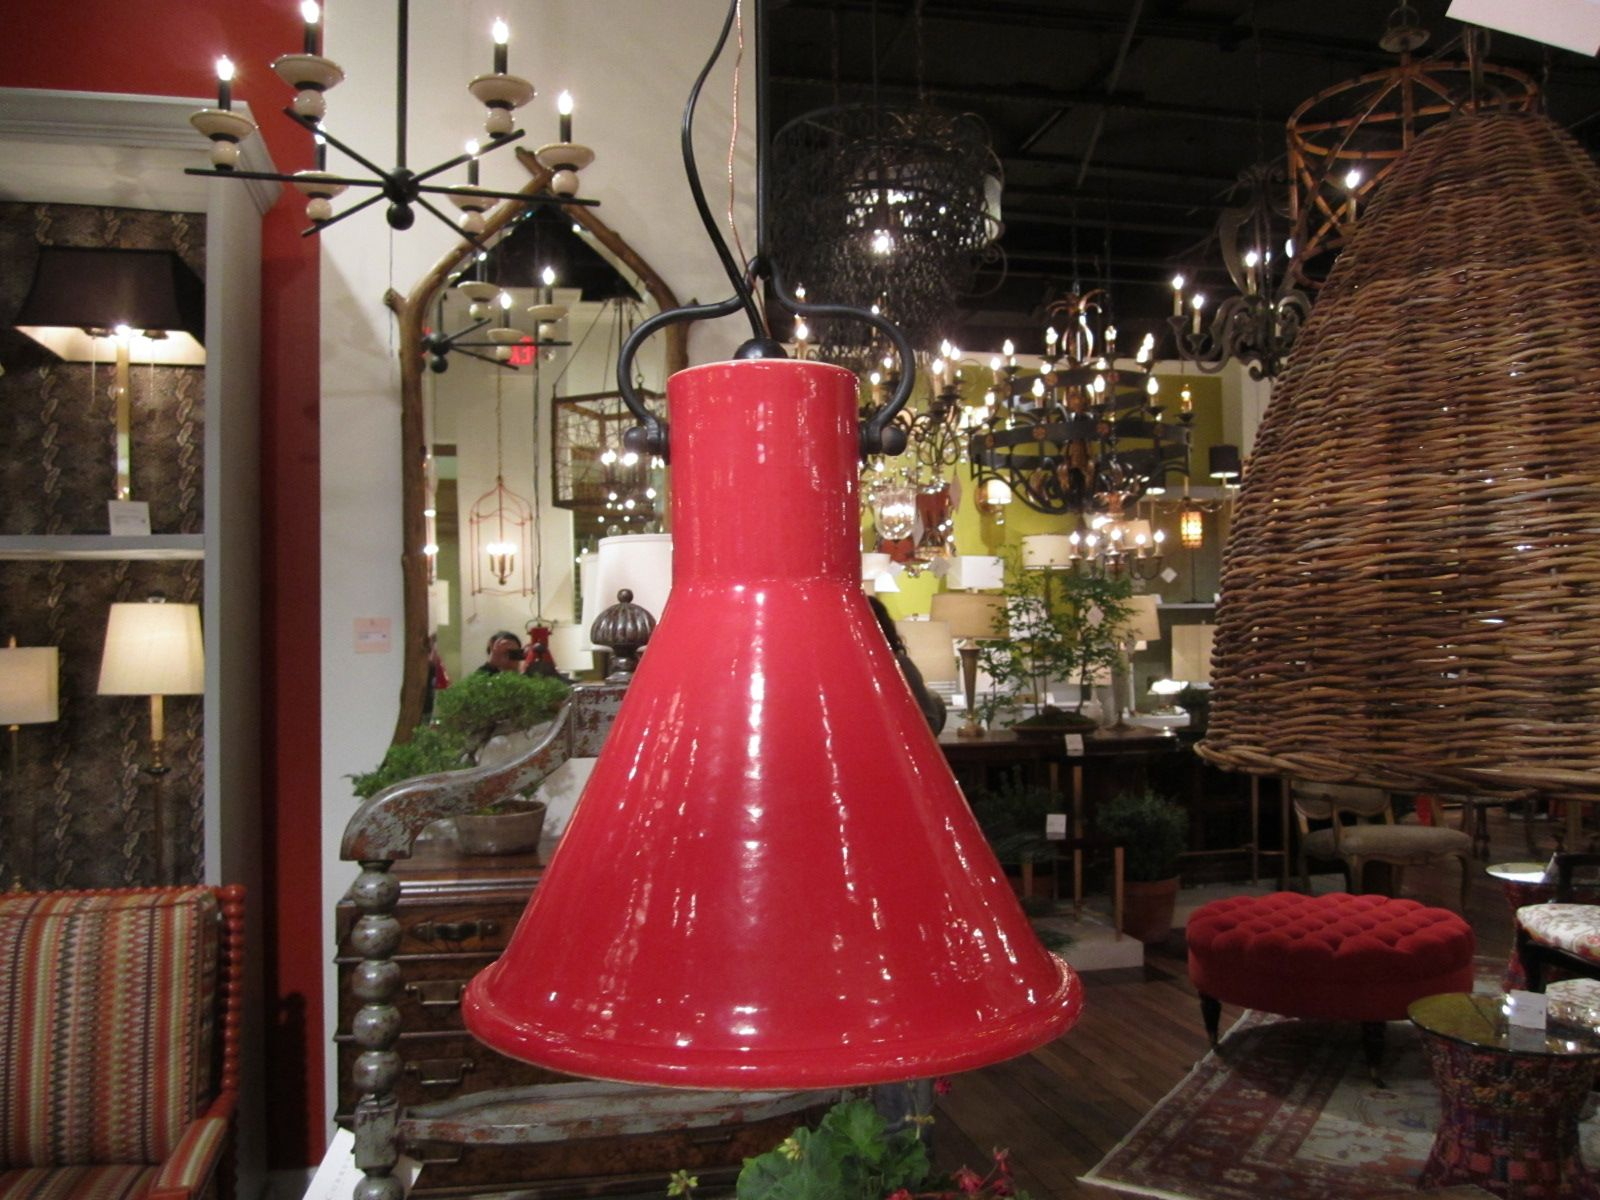 Fire Engine Red Pendant Light From Curry Co Via Stylebeat